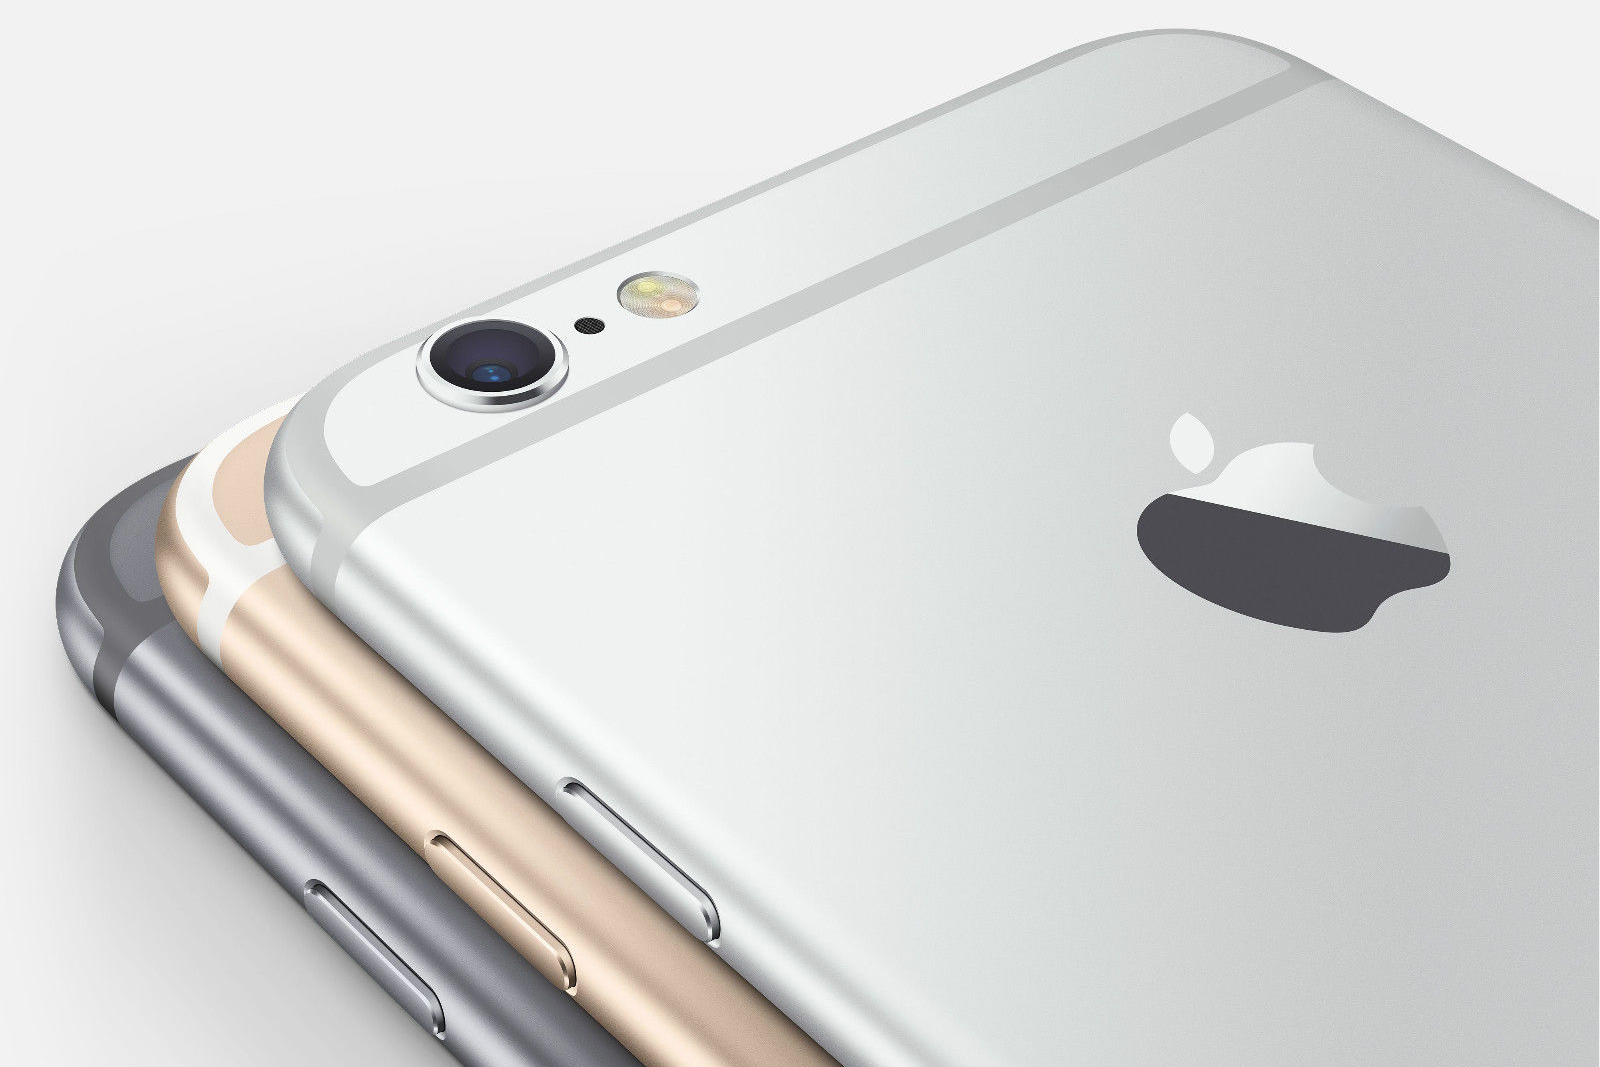 China Is Actually Trying to Ban the Apple iPhone 6 and 6 Plus